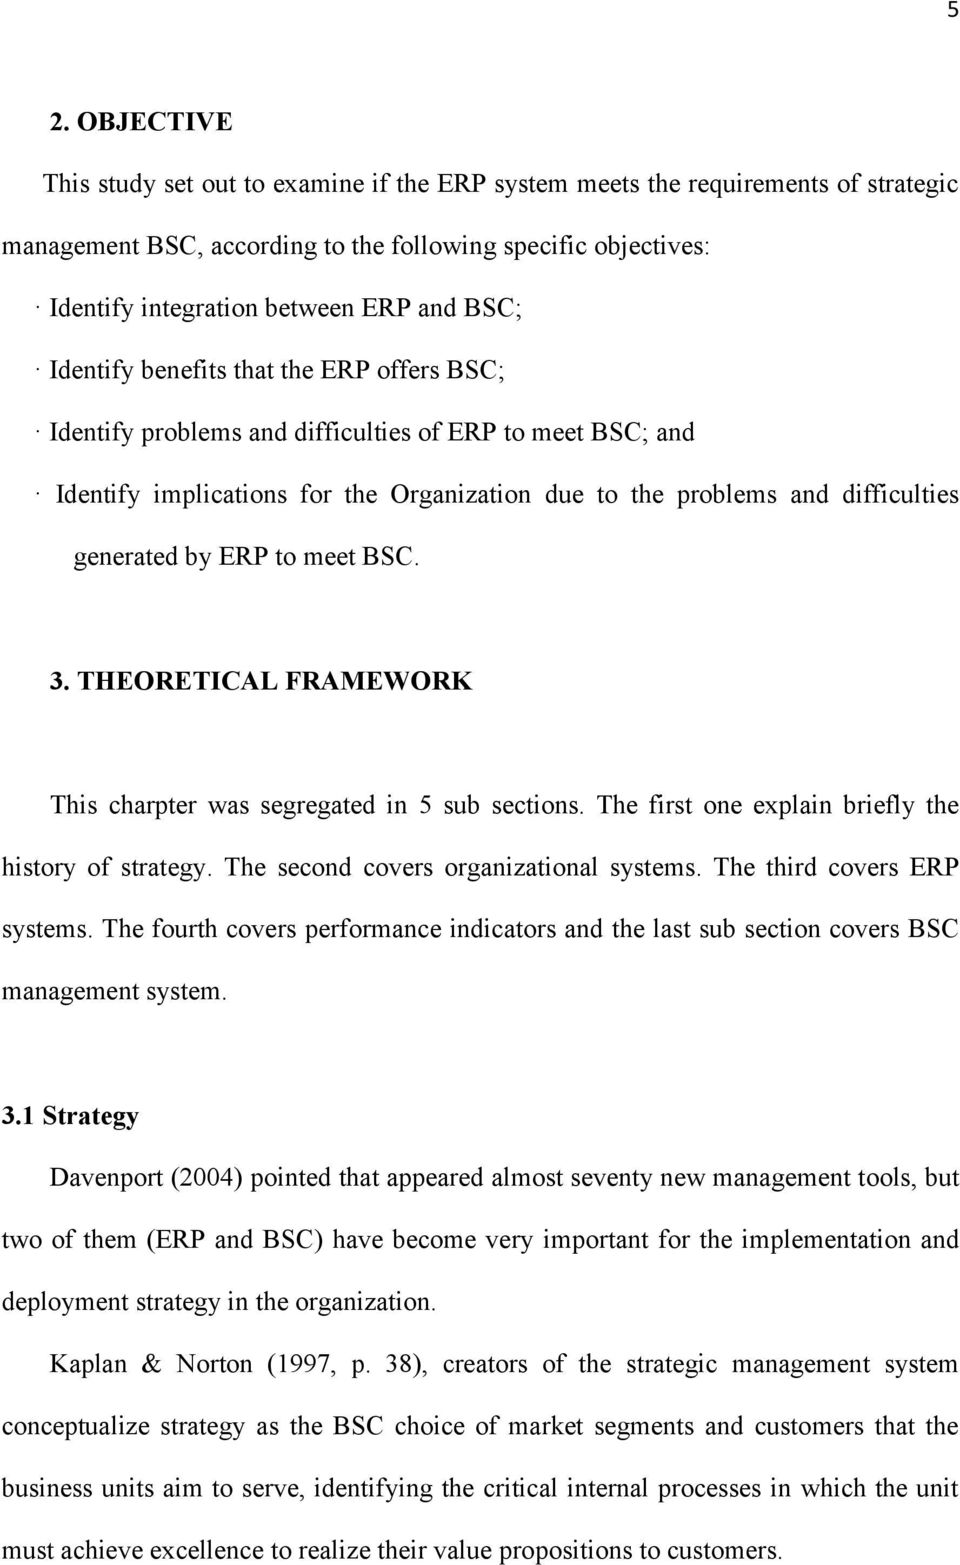 ERP to meet BSC. 3. THEORETICAL FRAMEWORK This charpter was segregated in 5 sub sections. The first one explain briefly the history of strategy. The second covers organizational systems.